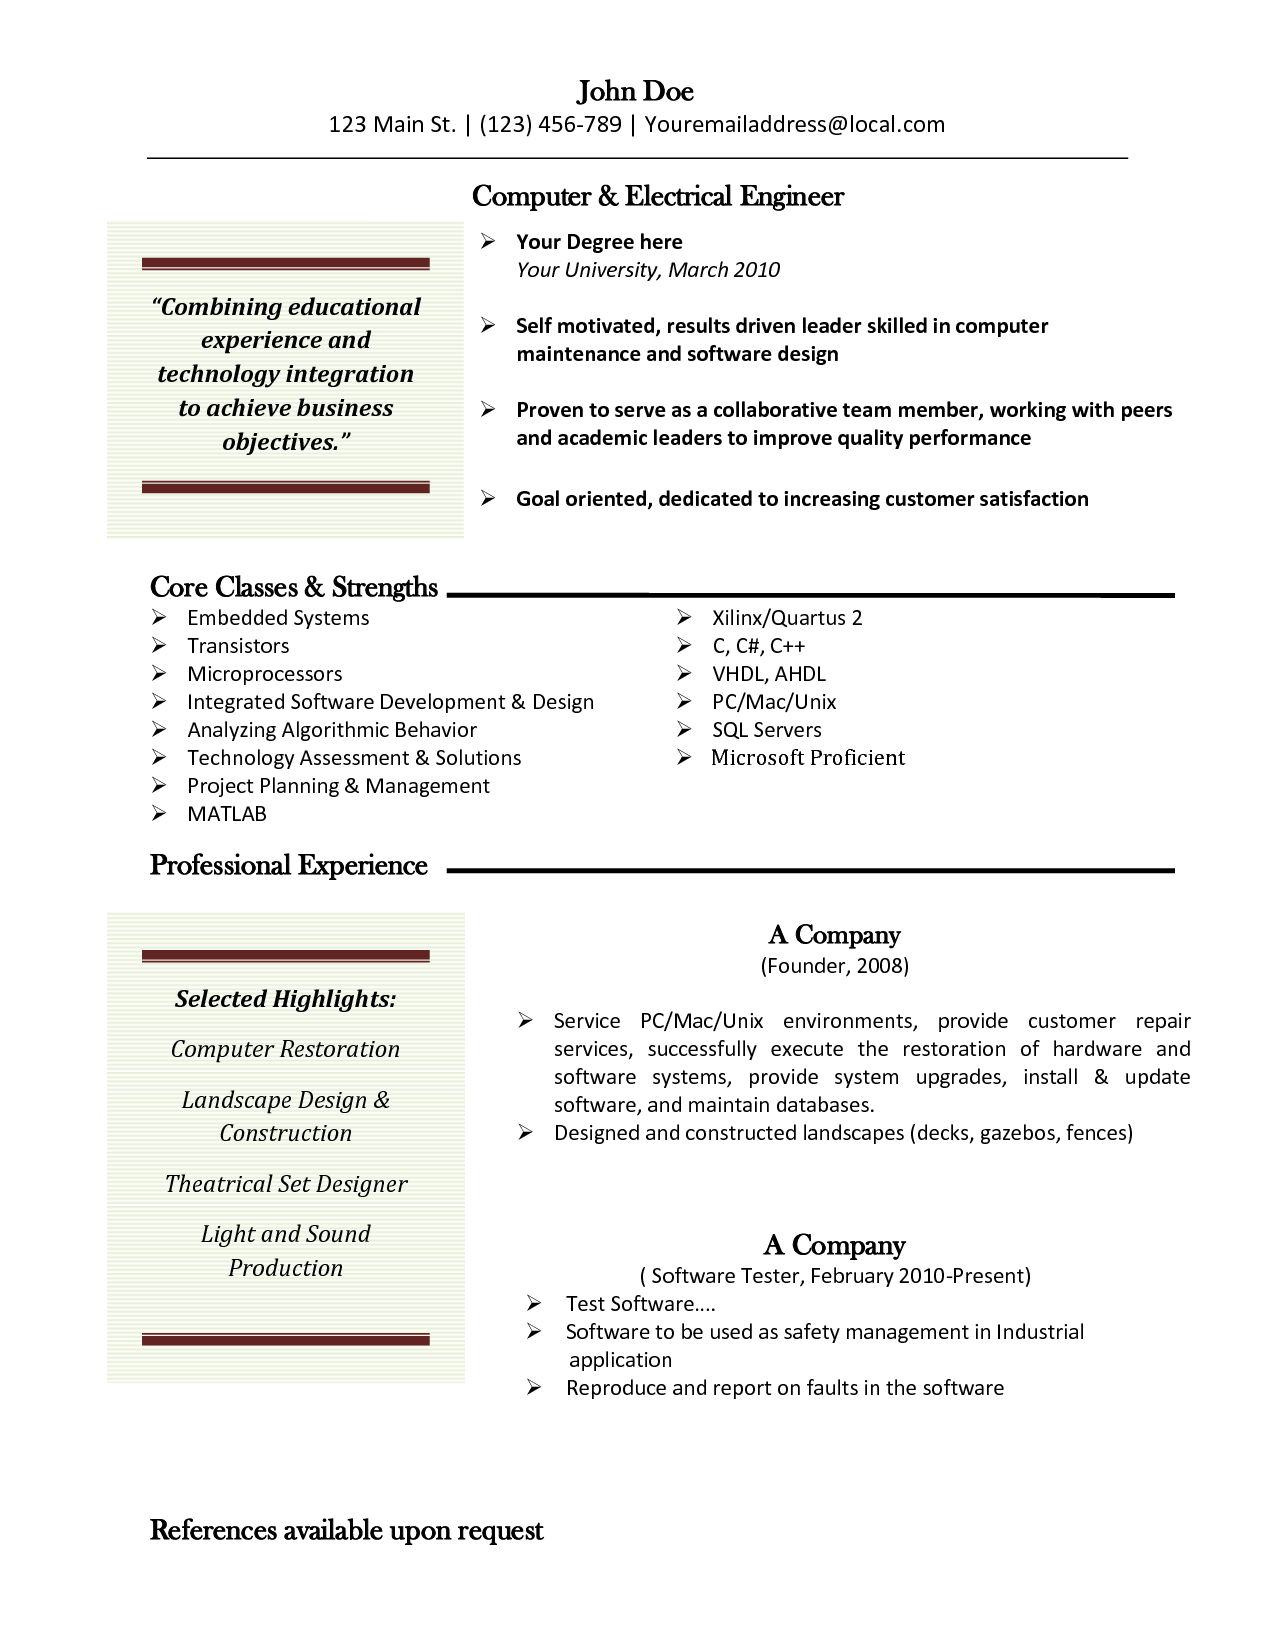 Resume Format Microsoft Word Fascinating Resume Templates For Mac  Httpwwwjobresumewebsiteresume Inspiration